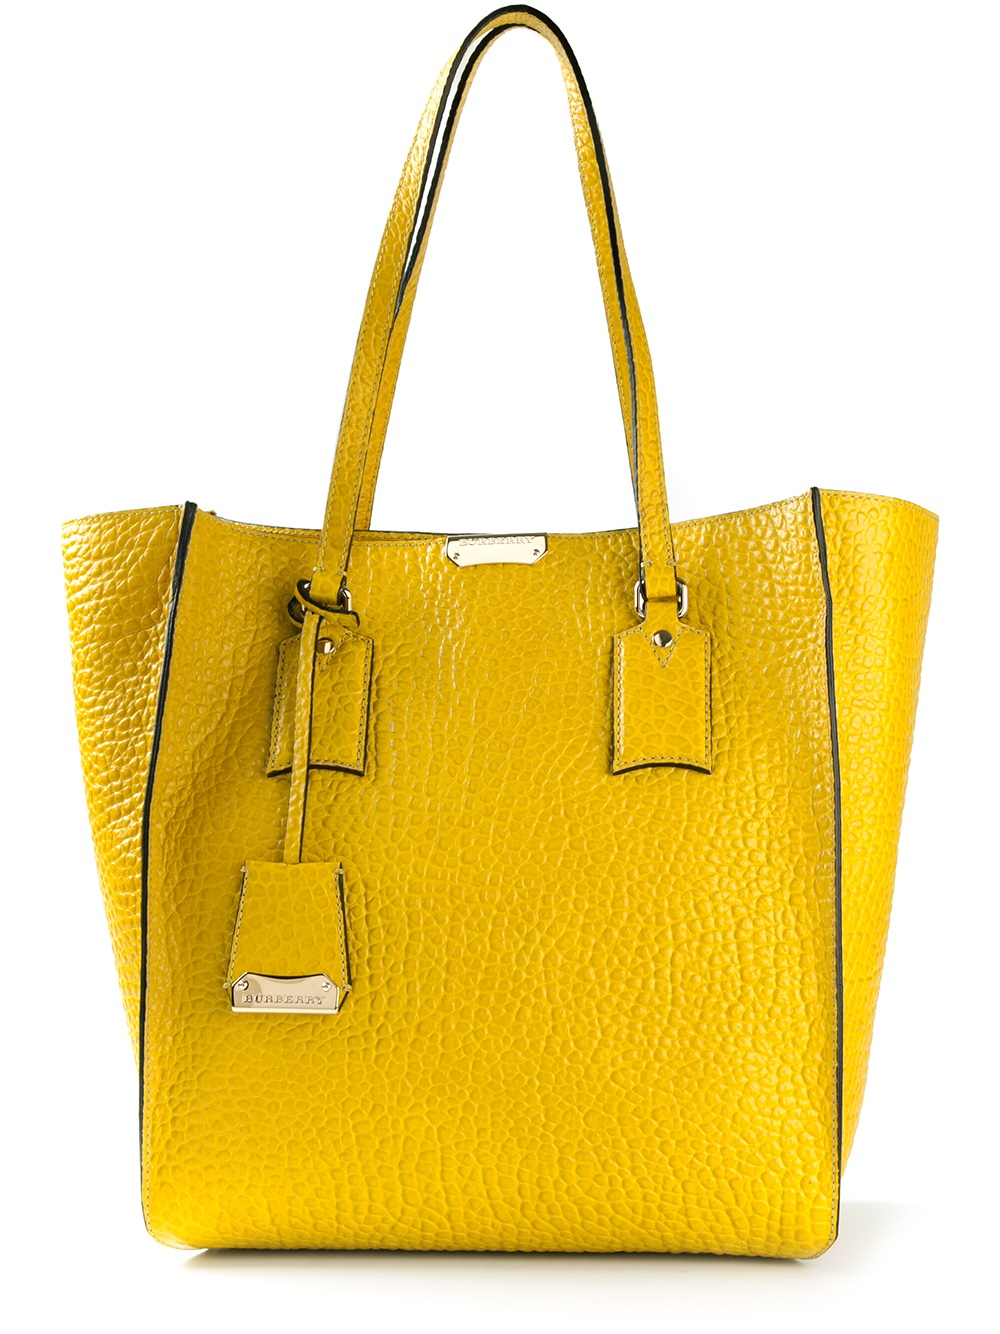 7de216952378 Lyst - Burberry Medium Signature Tote Bag in Yellow